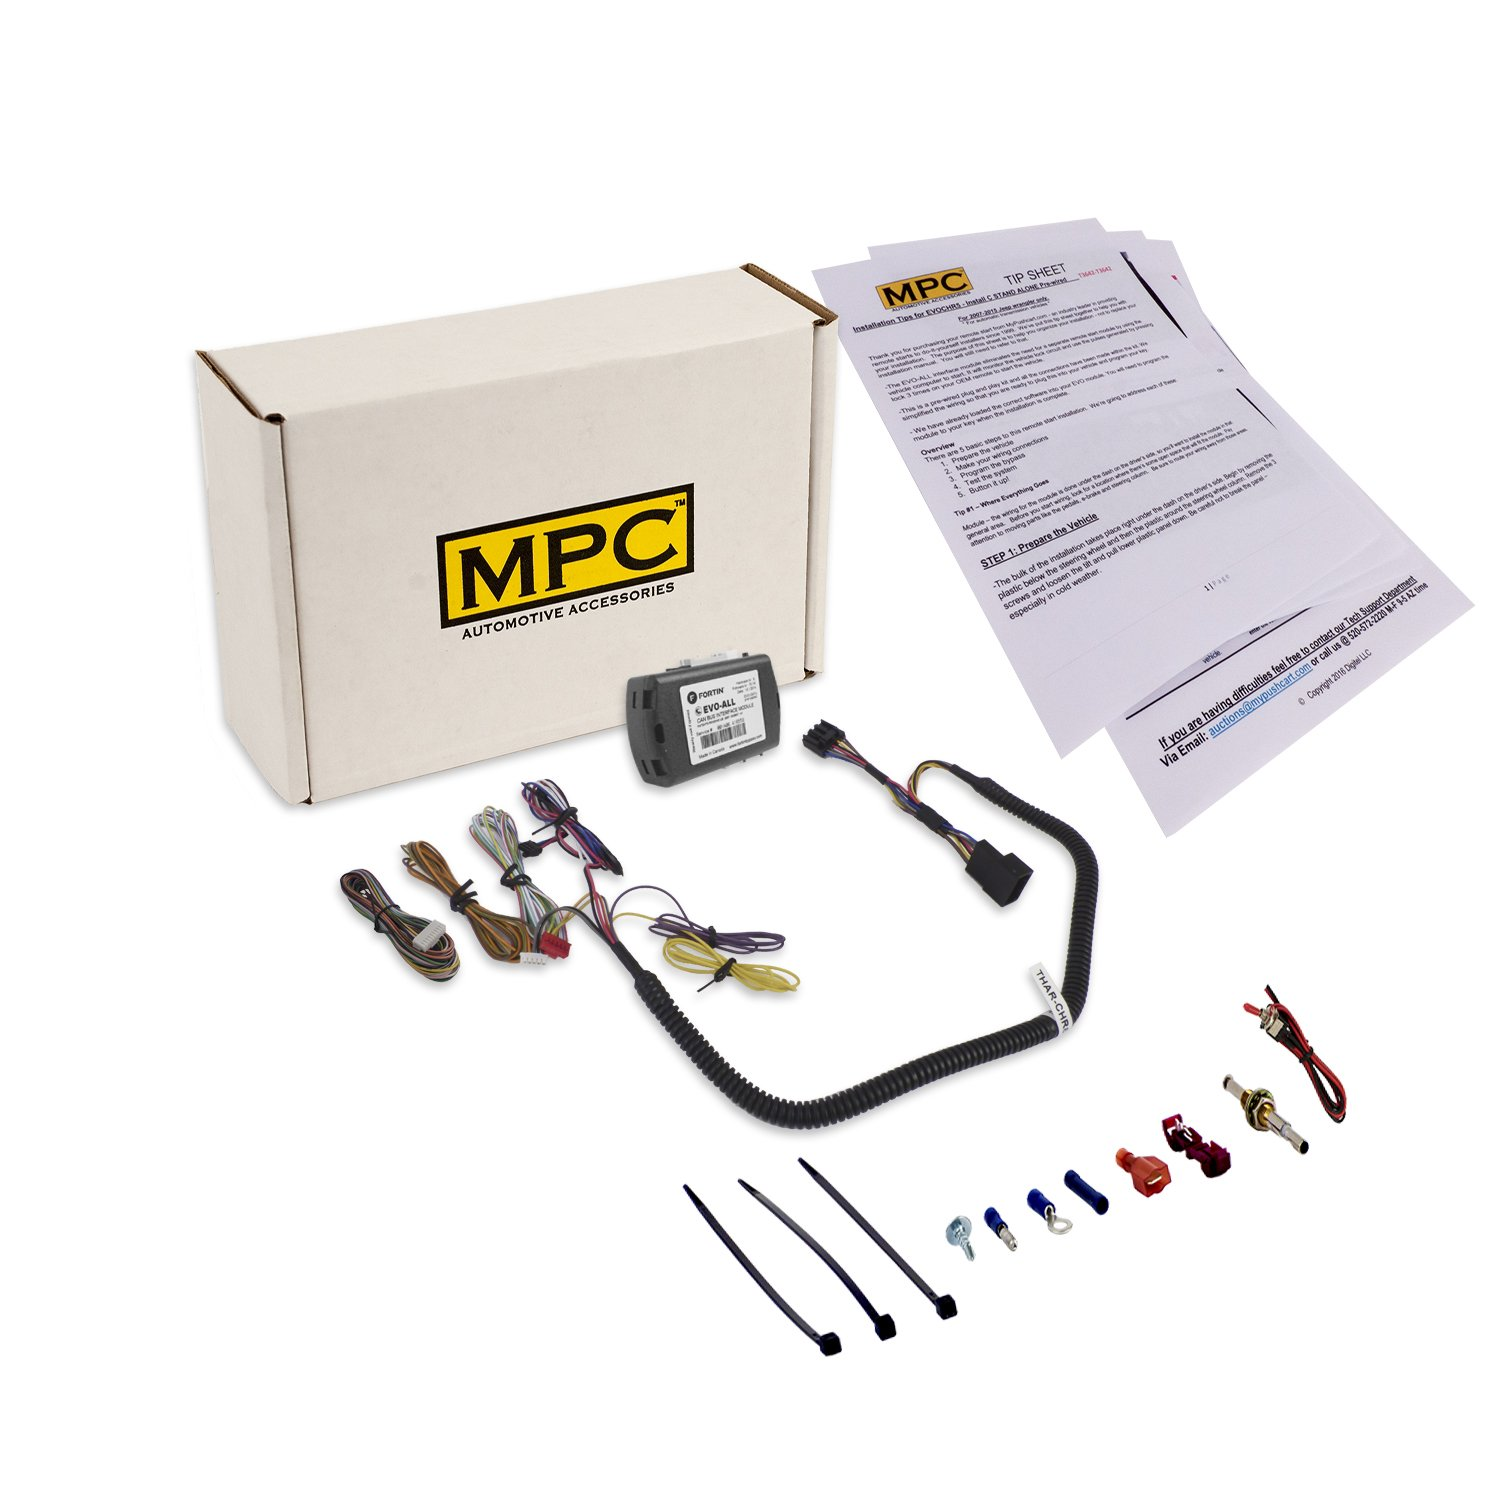 MPC Plug and Play Remote Start for 2007-2018 Jeep Wrangler. Use your SMARTPHONE or OEM Remotes to Start. Easy Install